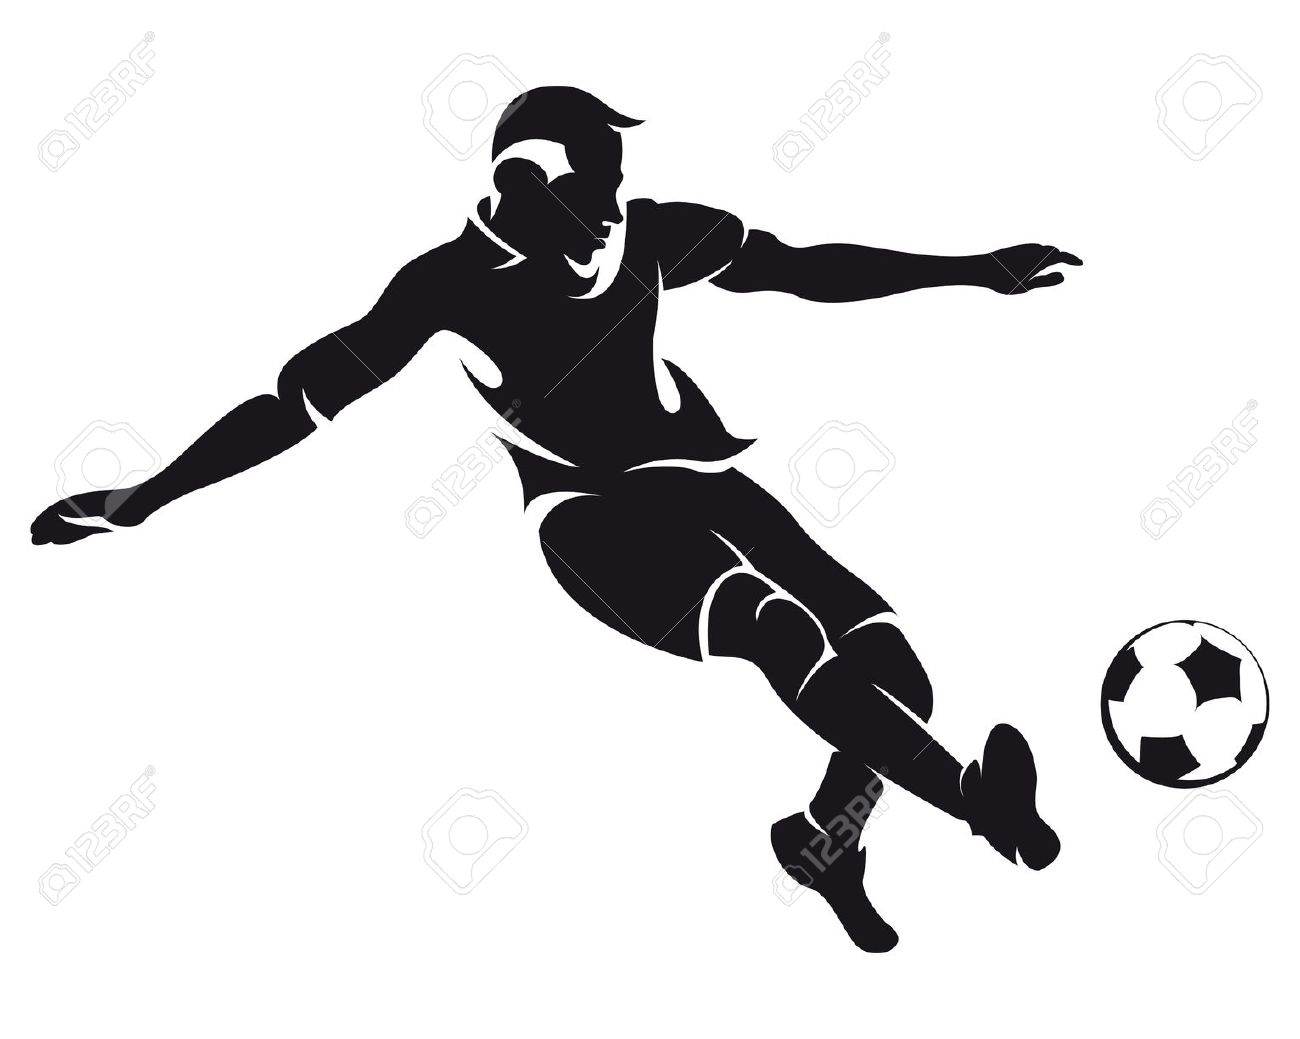 Best Football Player Clipart Black And White 21026